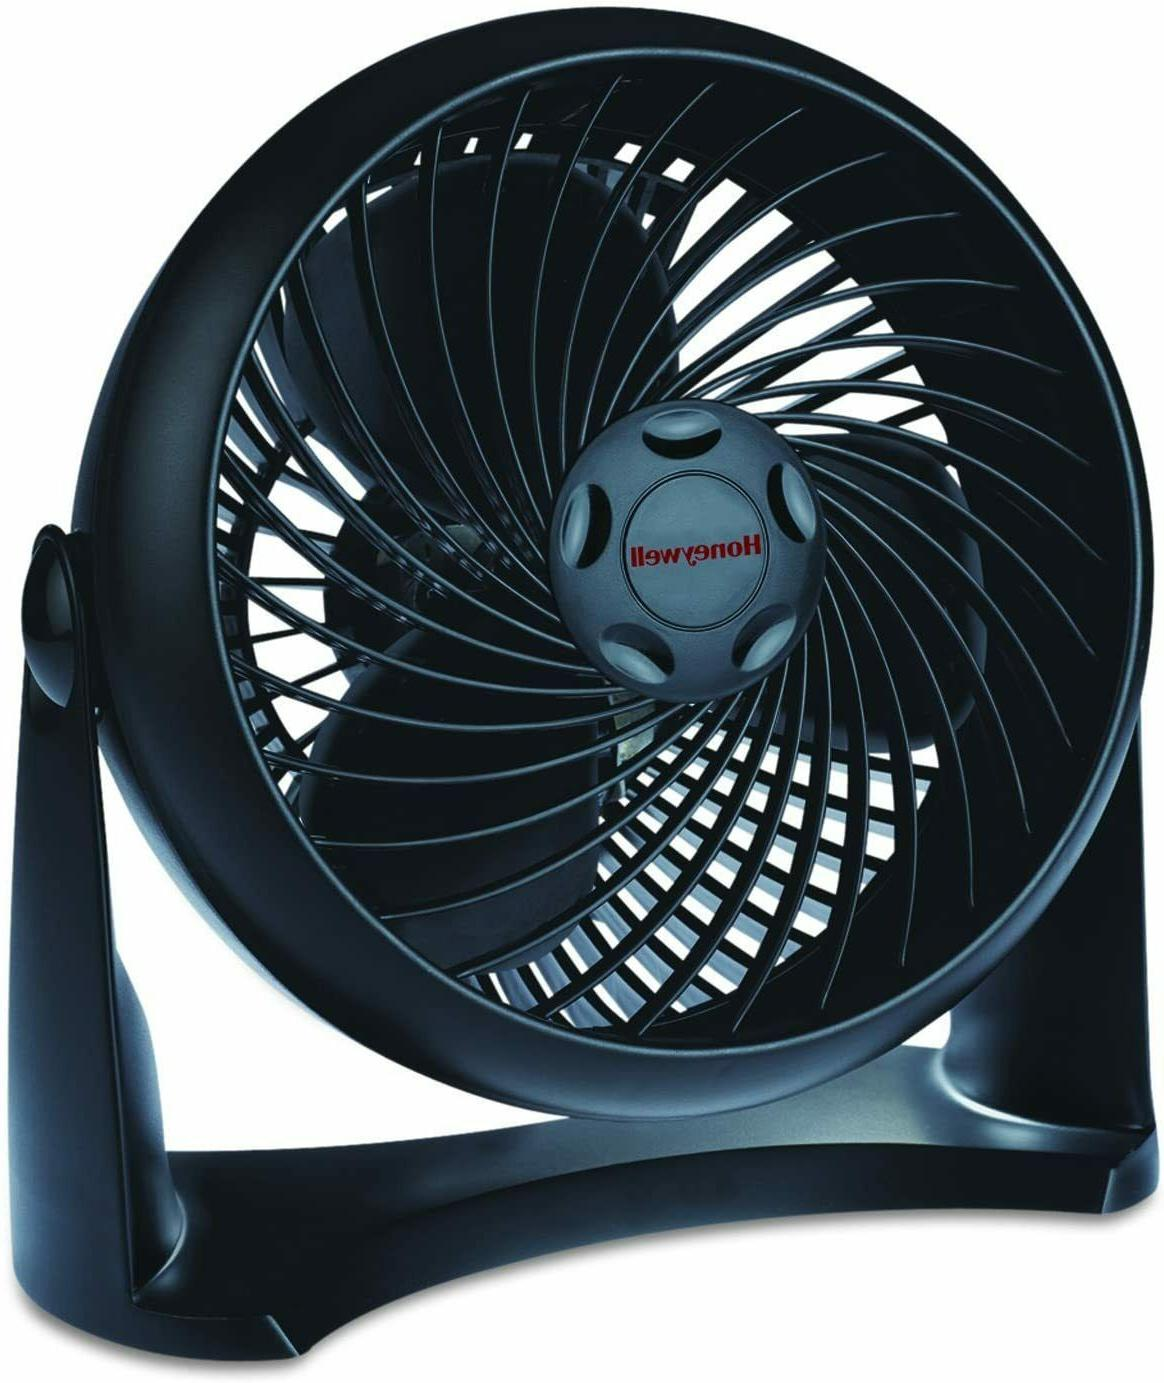 Honeywell HT-900 TurboForce Air Circulator Fan Black Speed S